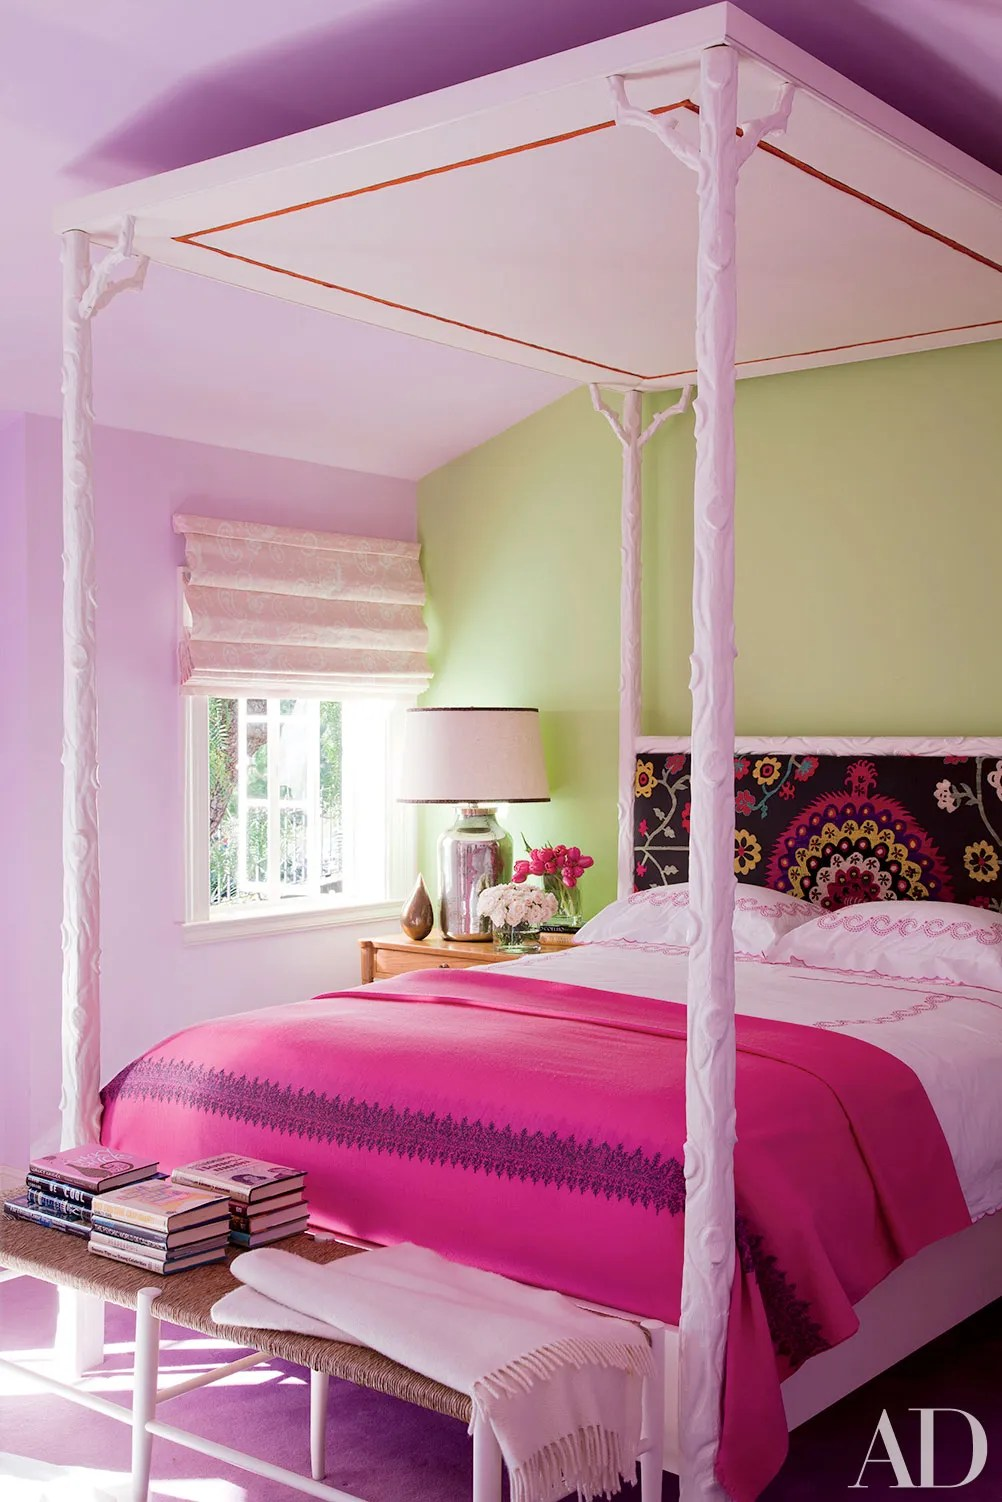 Pink Room Decoration Inspiration Photos  Architectural Digest